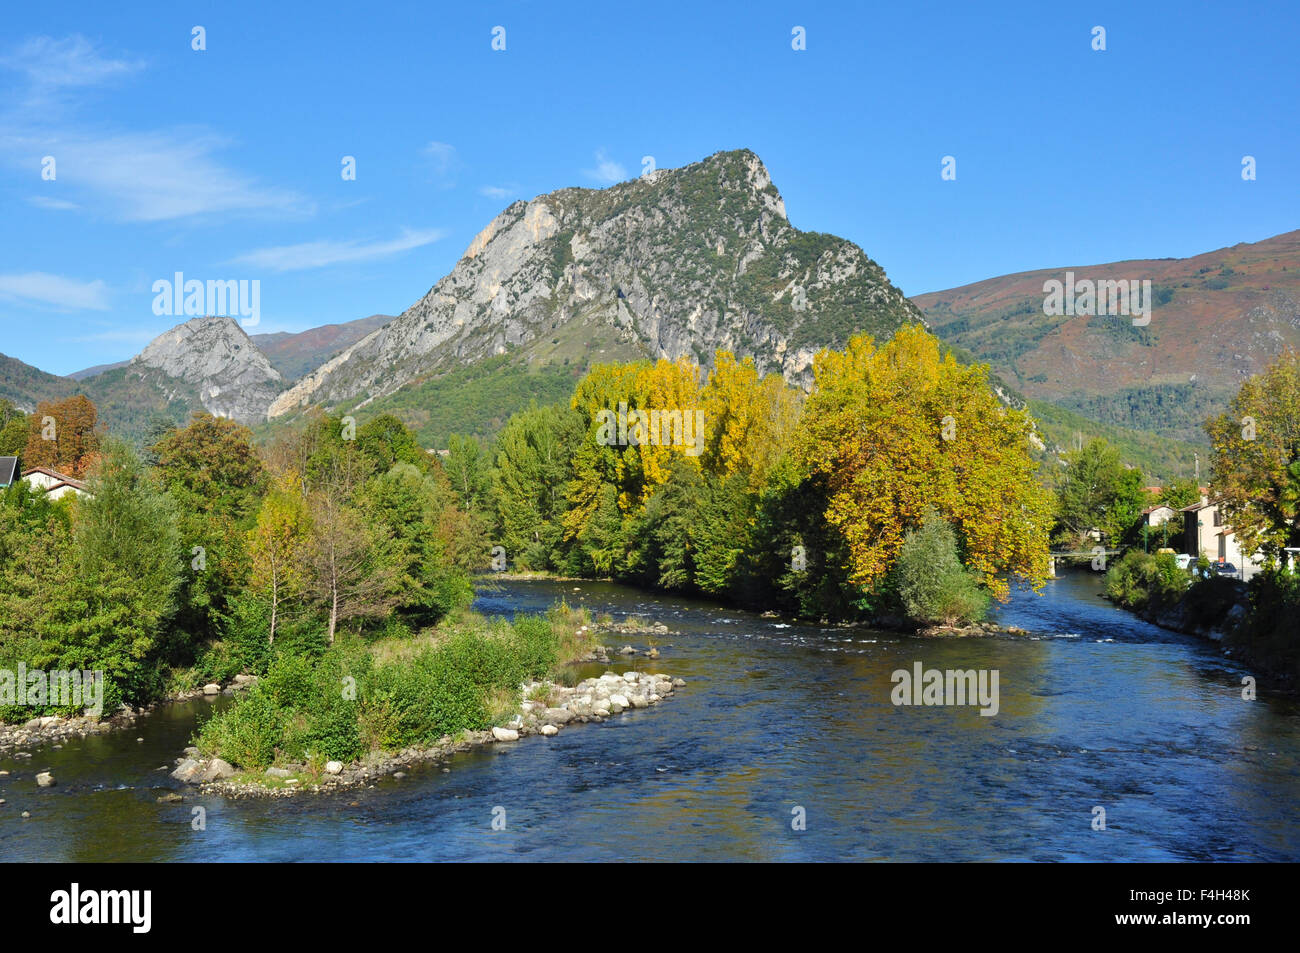 River Ariege and countryside at Tarascon, Ariege, Midi-Pyrenees, France Stock Photo